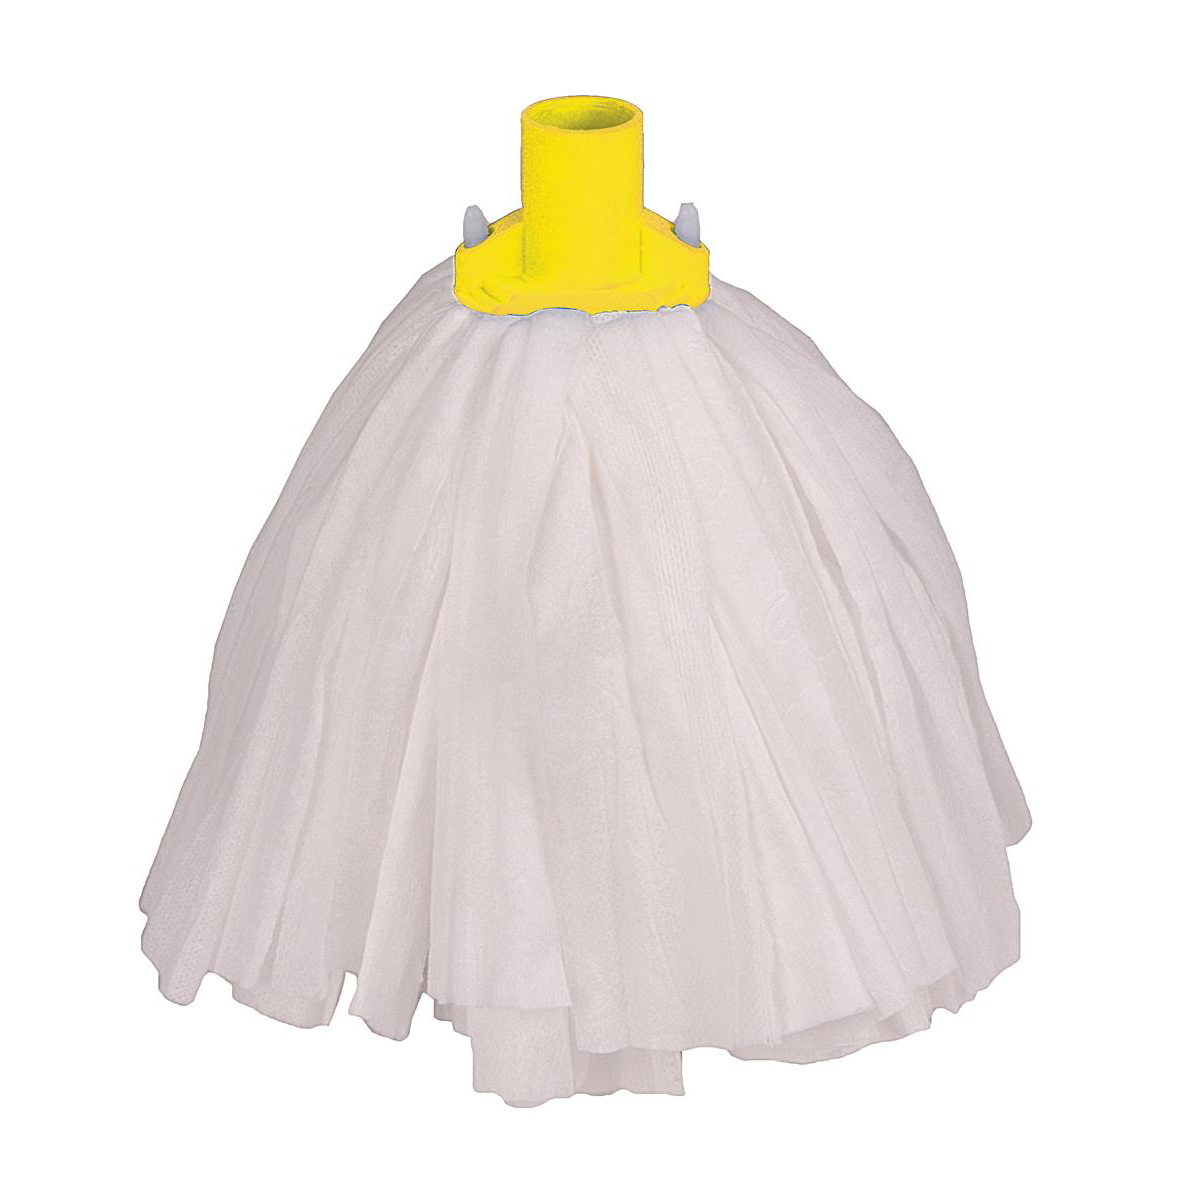 Robert Scott & Sons Big White Socket Mop T1 Non-woven Colour-coded Yellow Ref 102211YELLOW [Pack 10]